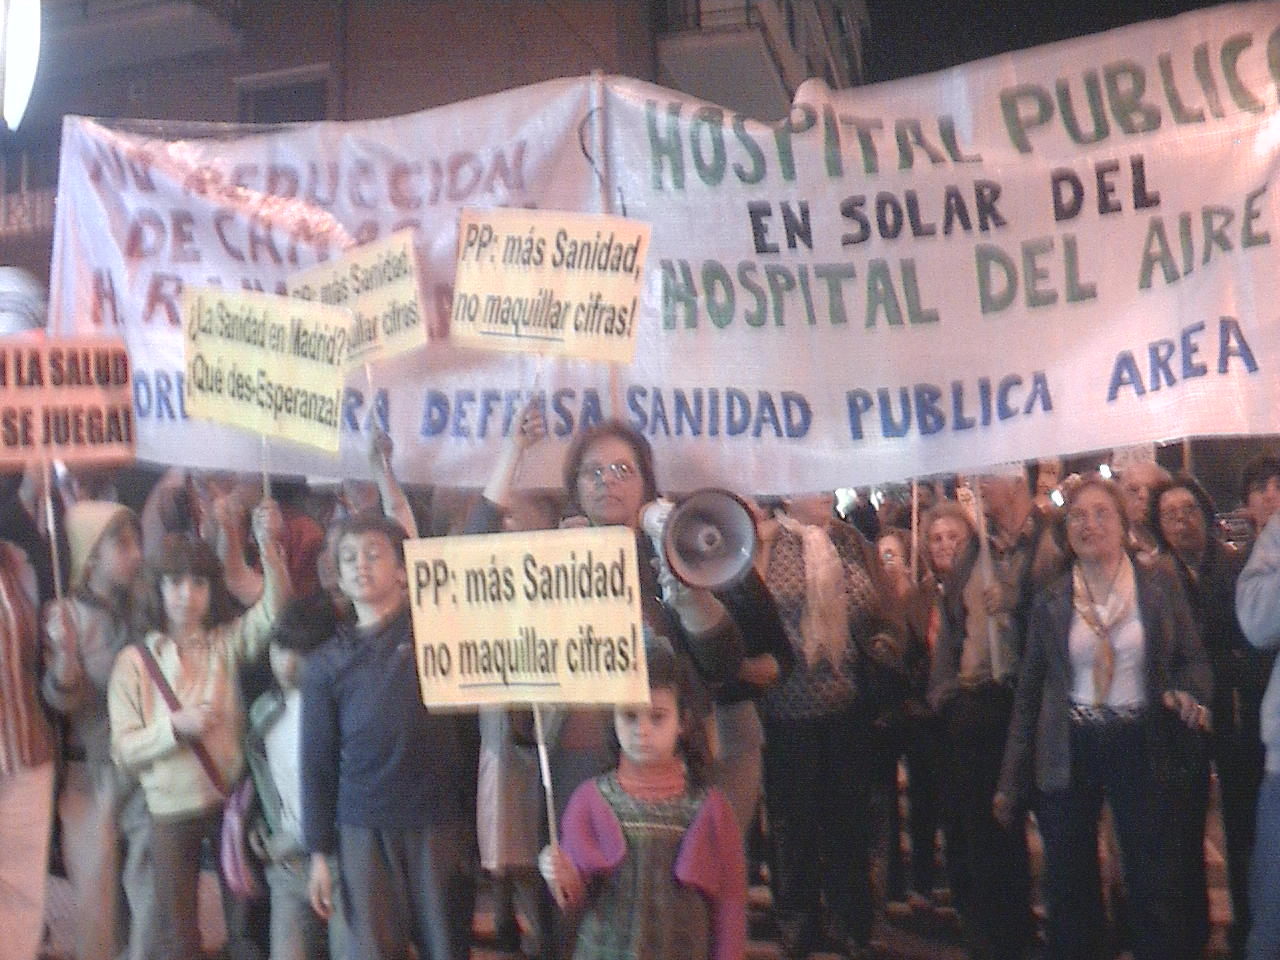 &#8220;En ese solar queremos un Hospital&#8221;. No a la reduccin de camas en el Hospital Ramn y Cajal (1).